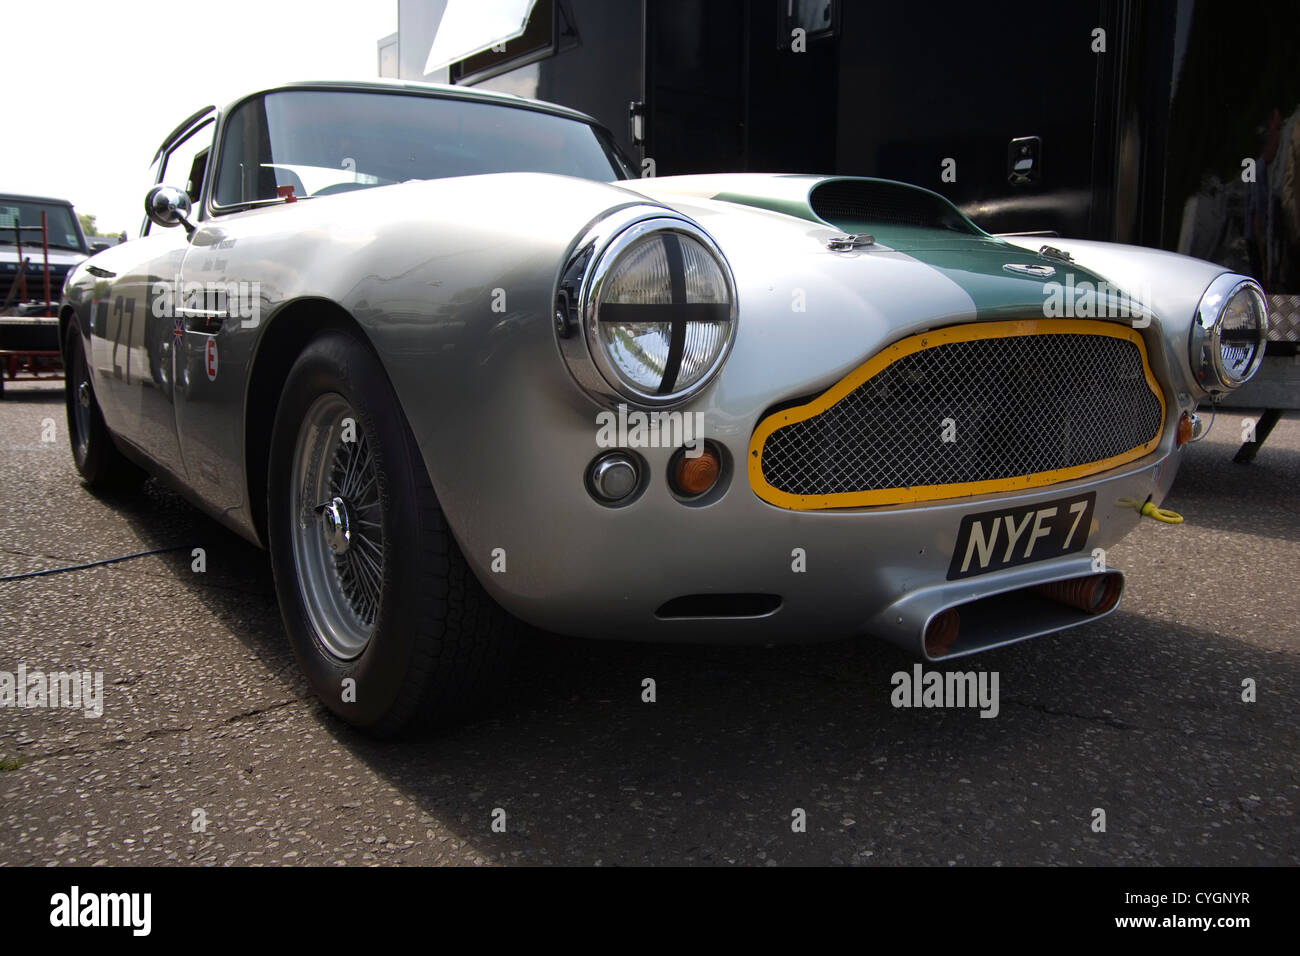 The Front Of A Classic Aston Martin Racing Car Stock Photo Alamy